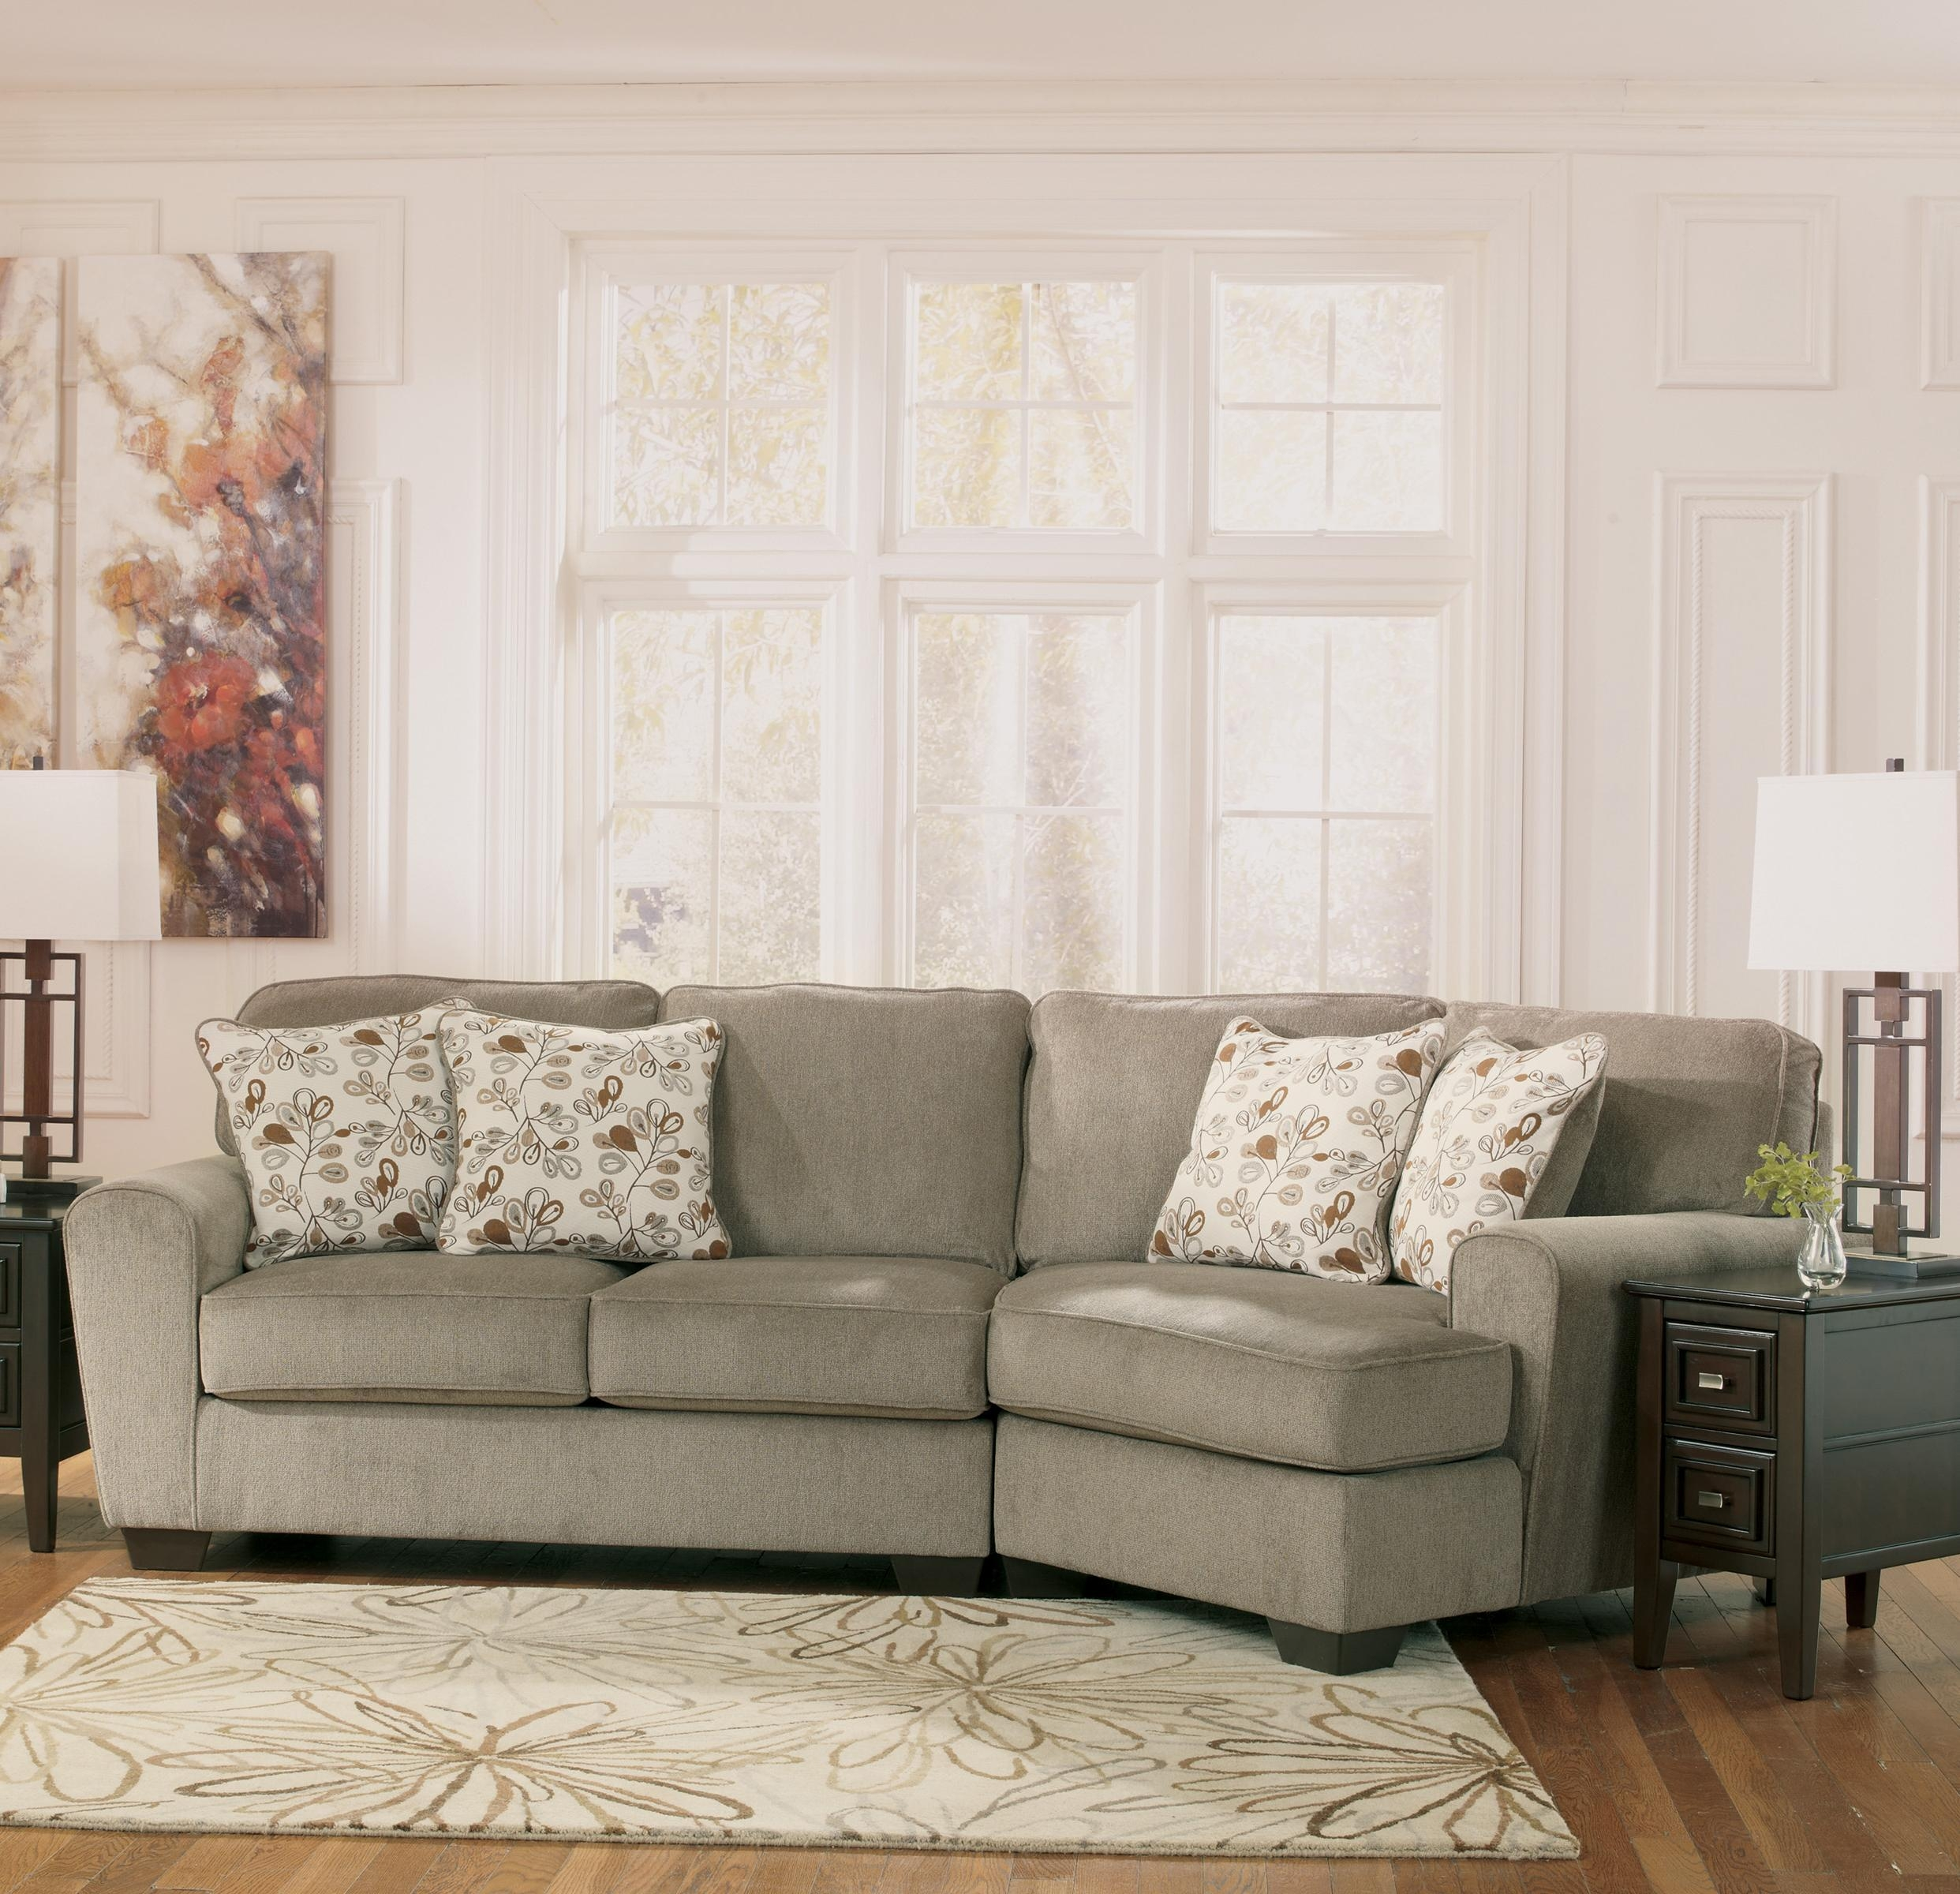 Ashley Furniture Patola Park – Patina 2 Piece Sectional With Right Within Small 2 Piece Sectional (View 14 of 20)